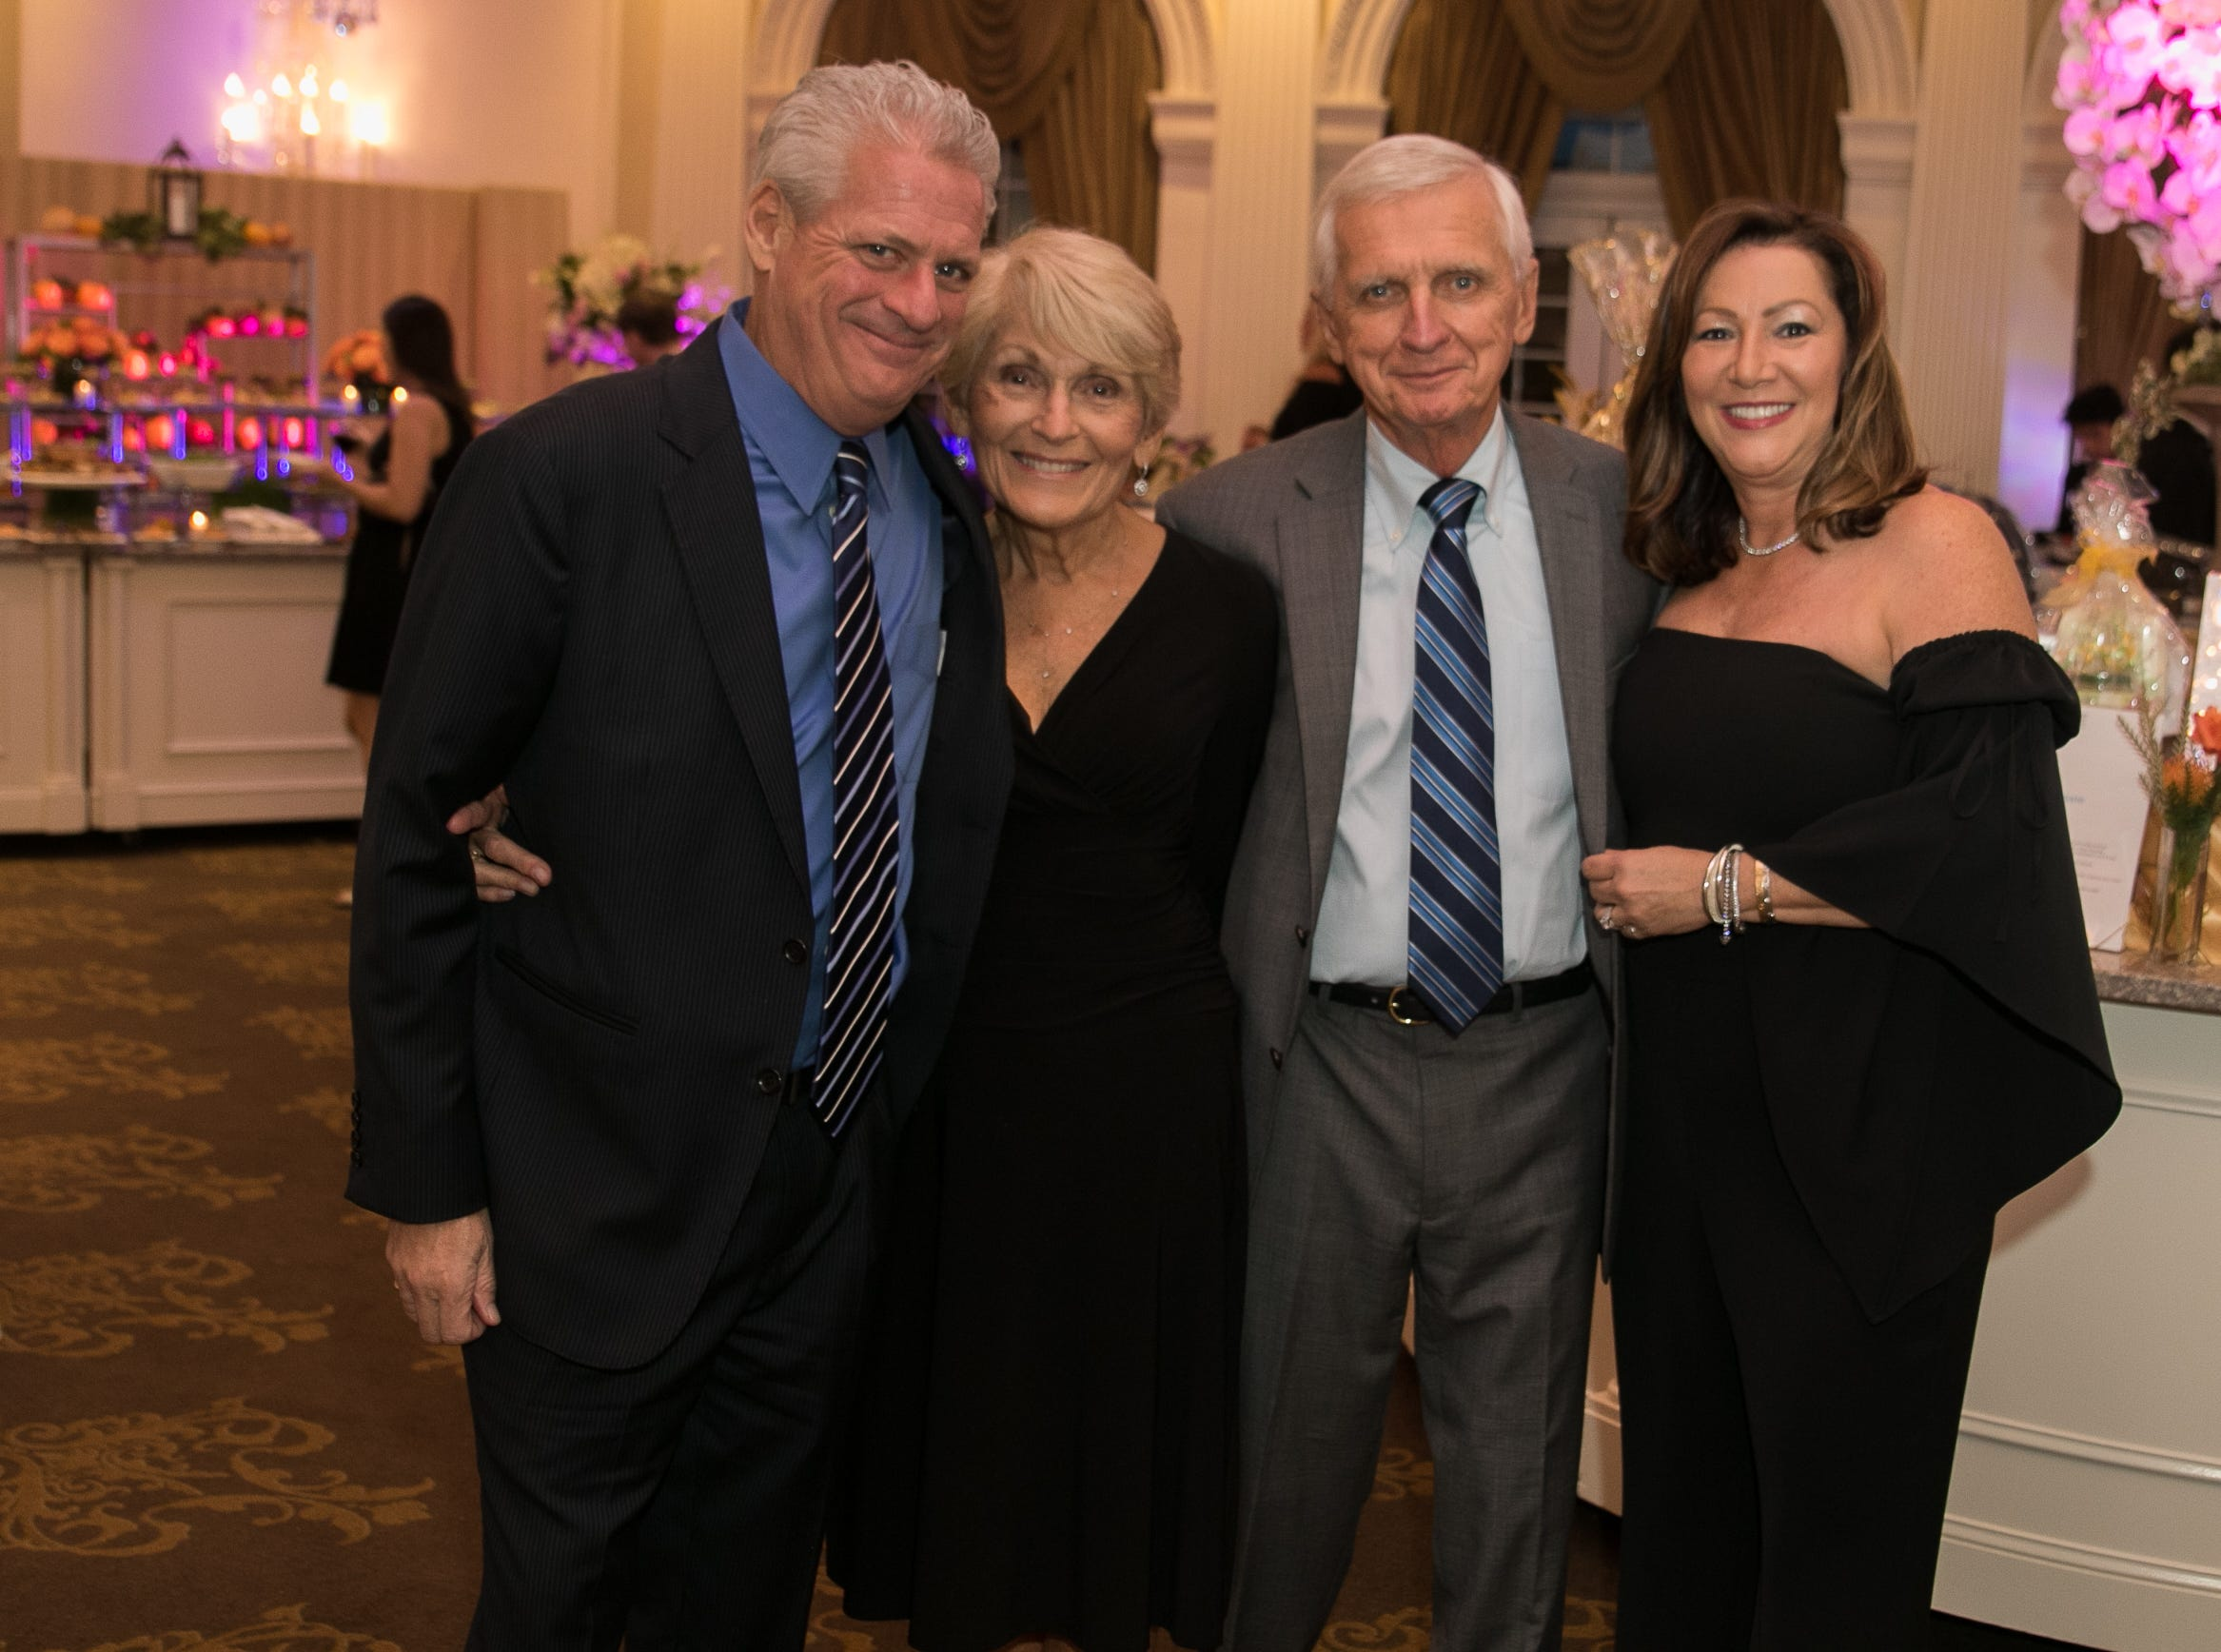 Chris Plecky, Barbara Pelcky, Tom Napiorski, Francesca Padilla. Bergen Family Center celebrated 120 years of service with dinner and a silent auction at Th e Rockleigh Country Club.11/1/2018